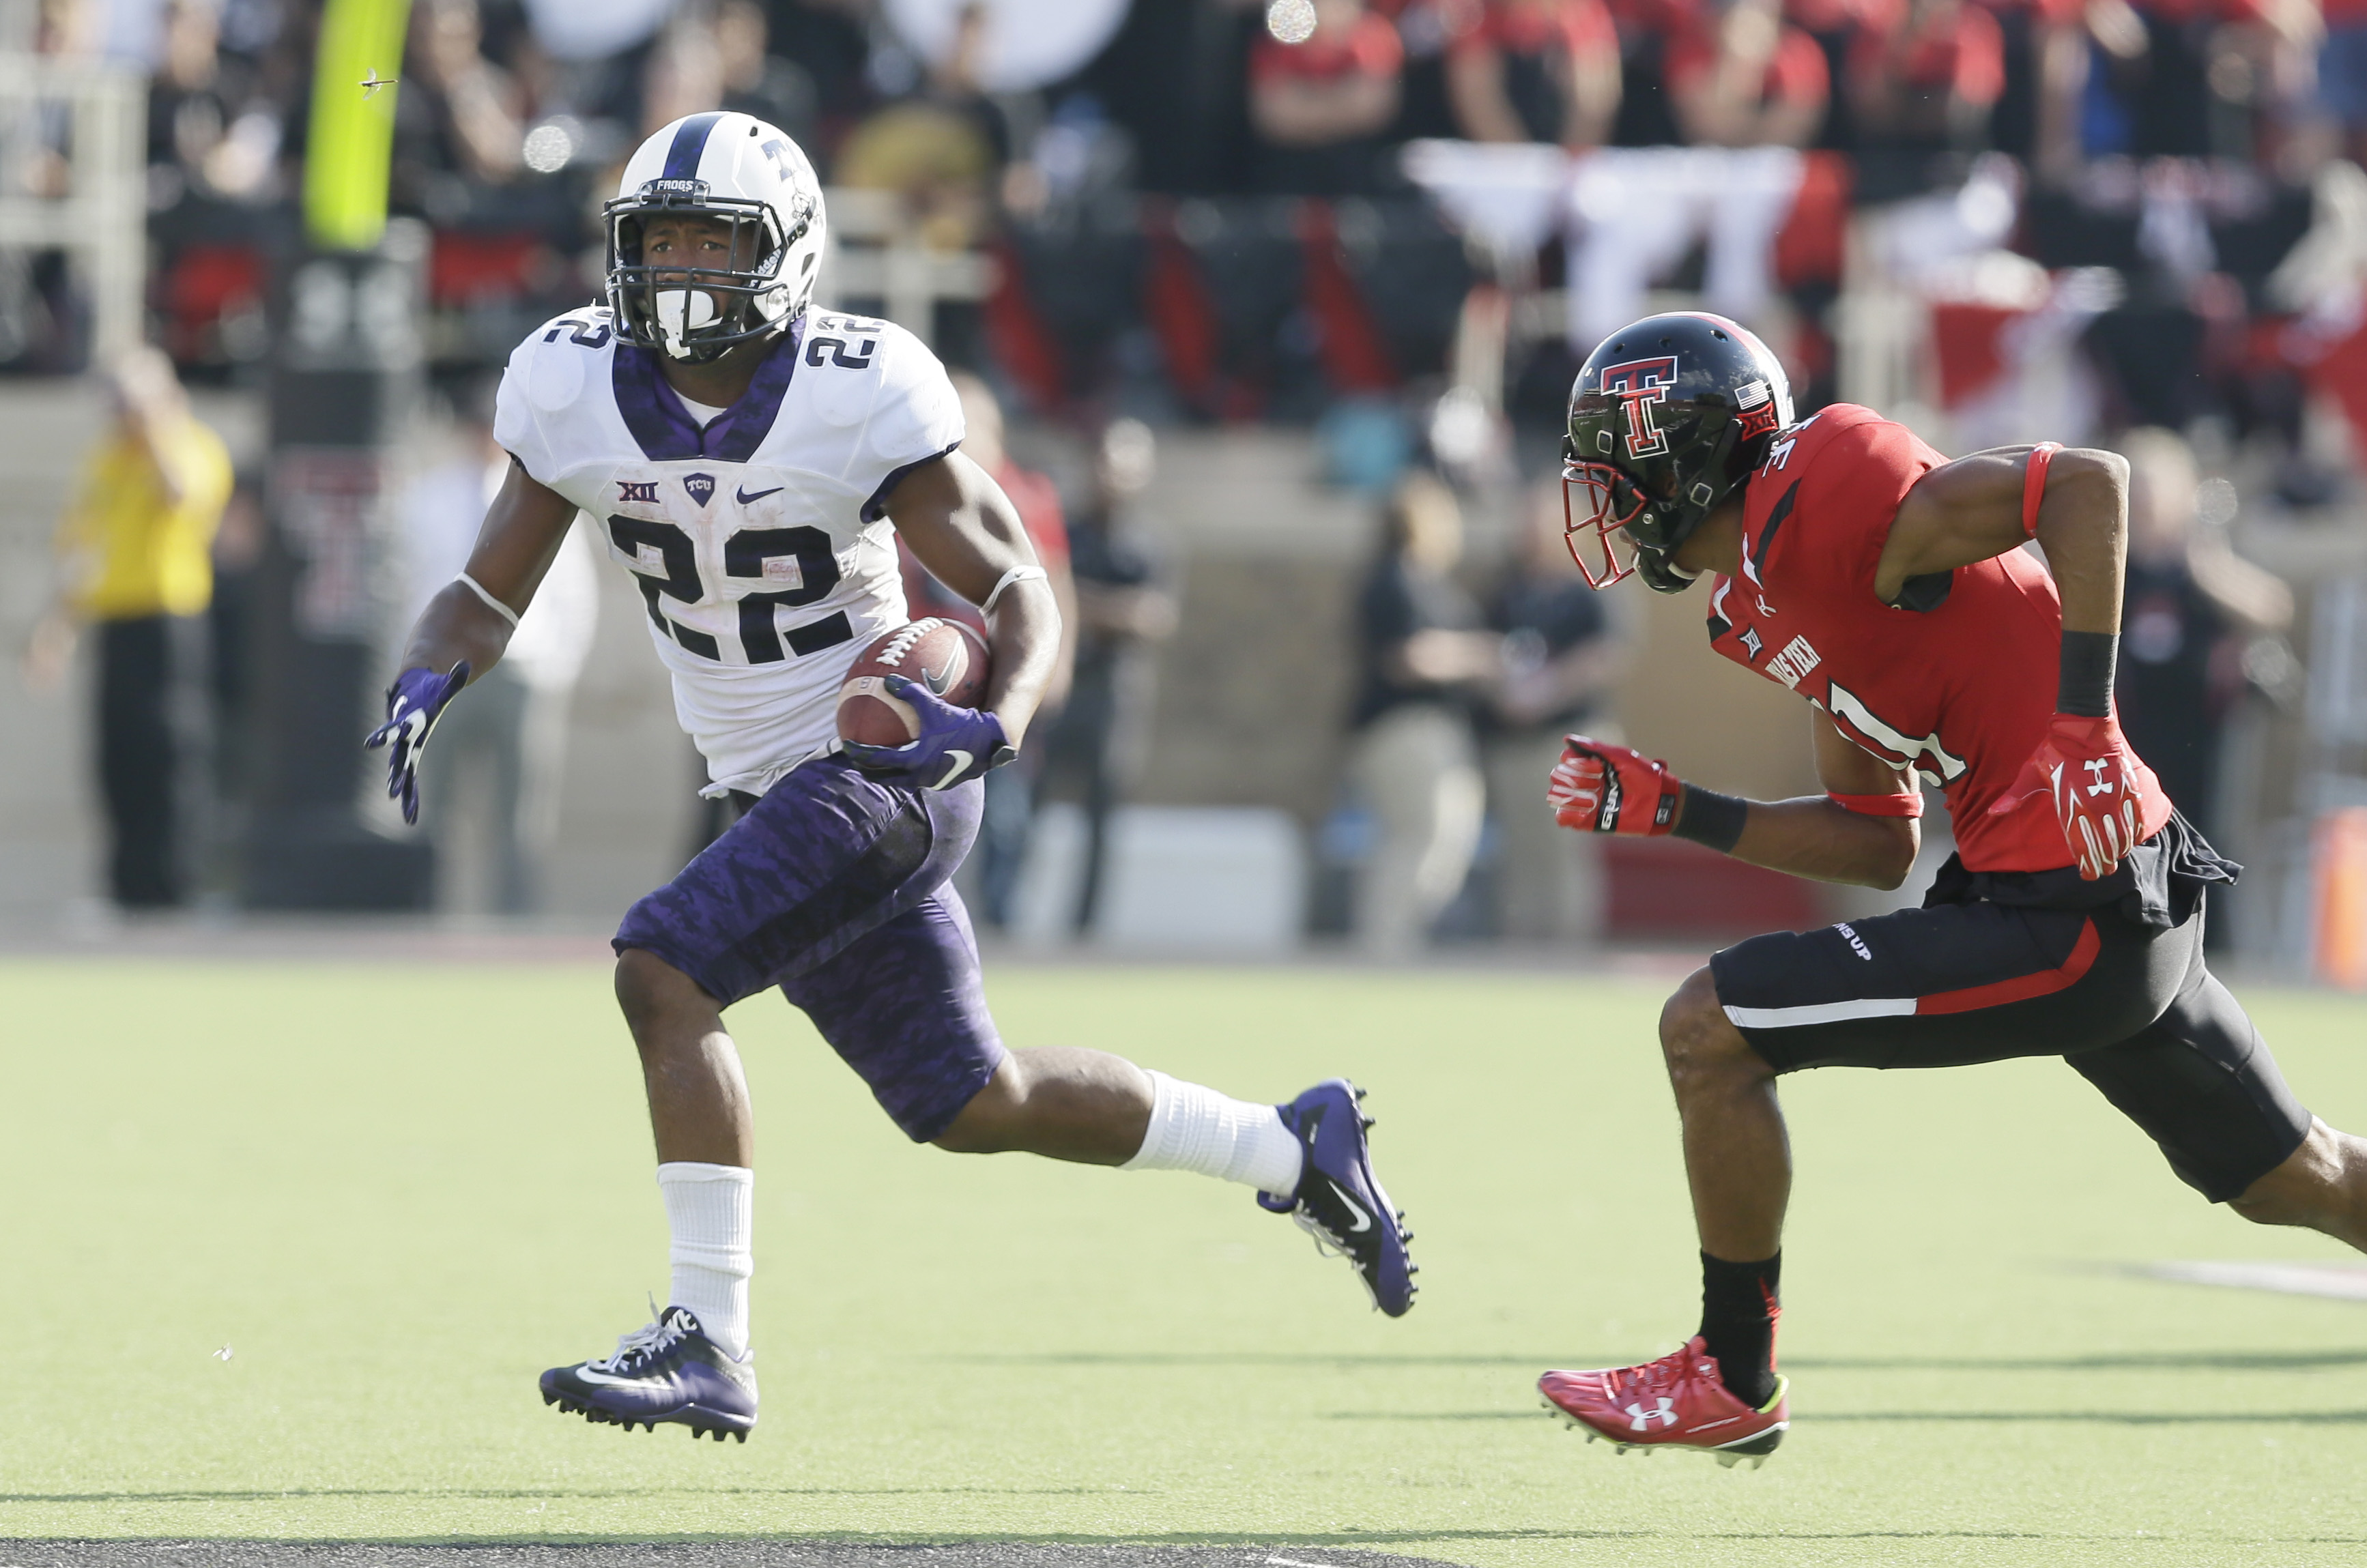 TCU running back Aaron Green (22) finds open field to run against Texas Tech defensive back Justis Nelson (31) during the first half of an NCAA college football game Saturday, Sept. 26, 2015, in Lubbock, Texas. (AP Photo/LM Otero)